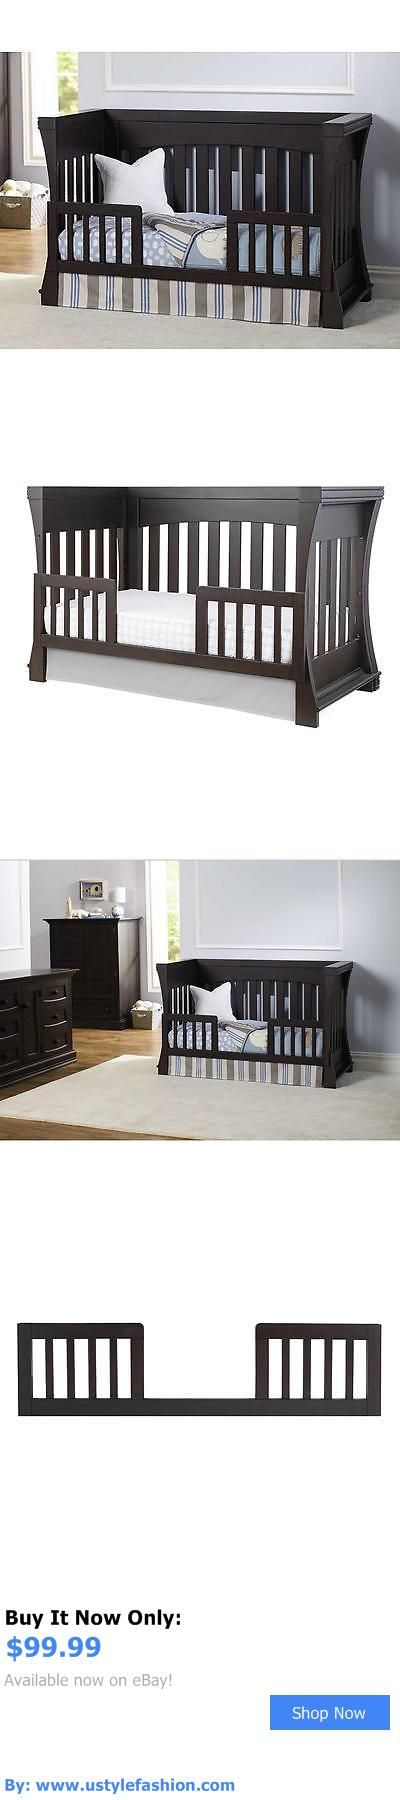 Nursery Furniture Sets: Eco Chic Baby Dorchester Island Toddler Guard Rail - Slate BUY IT NOW ONLY: $99.99 #ustylefashionNurseryFurnitureSets OR #ustylefashion